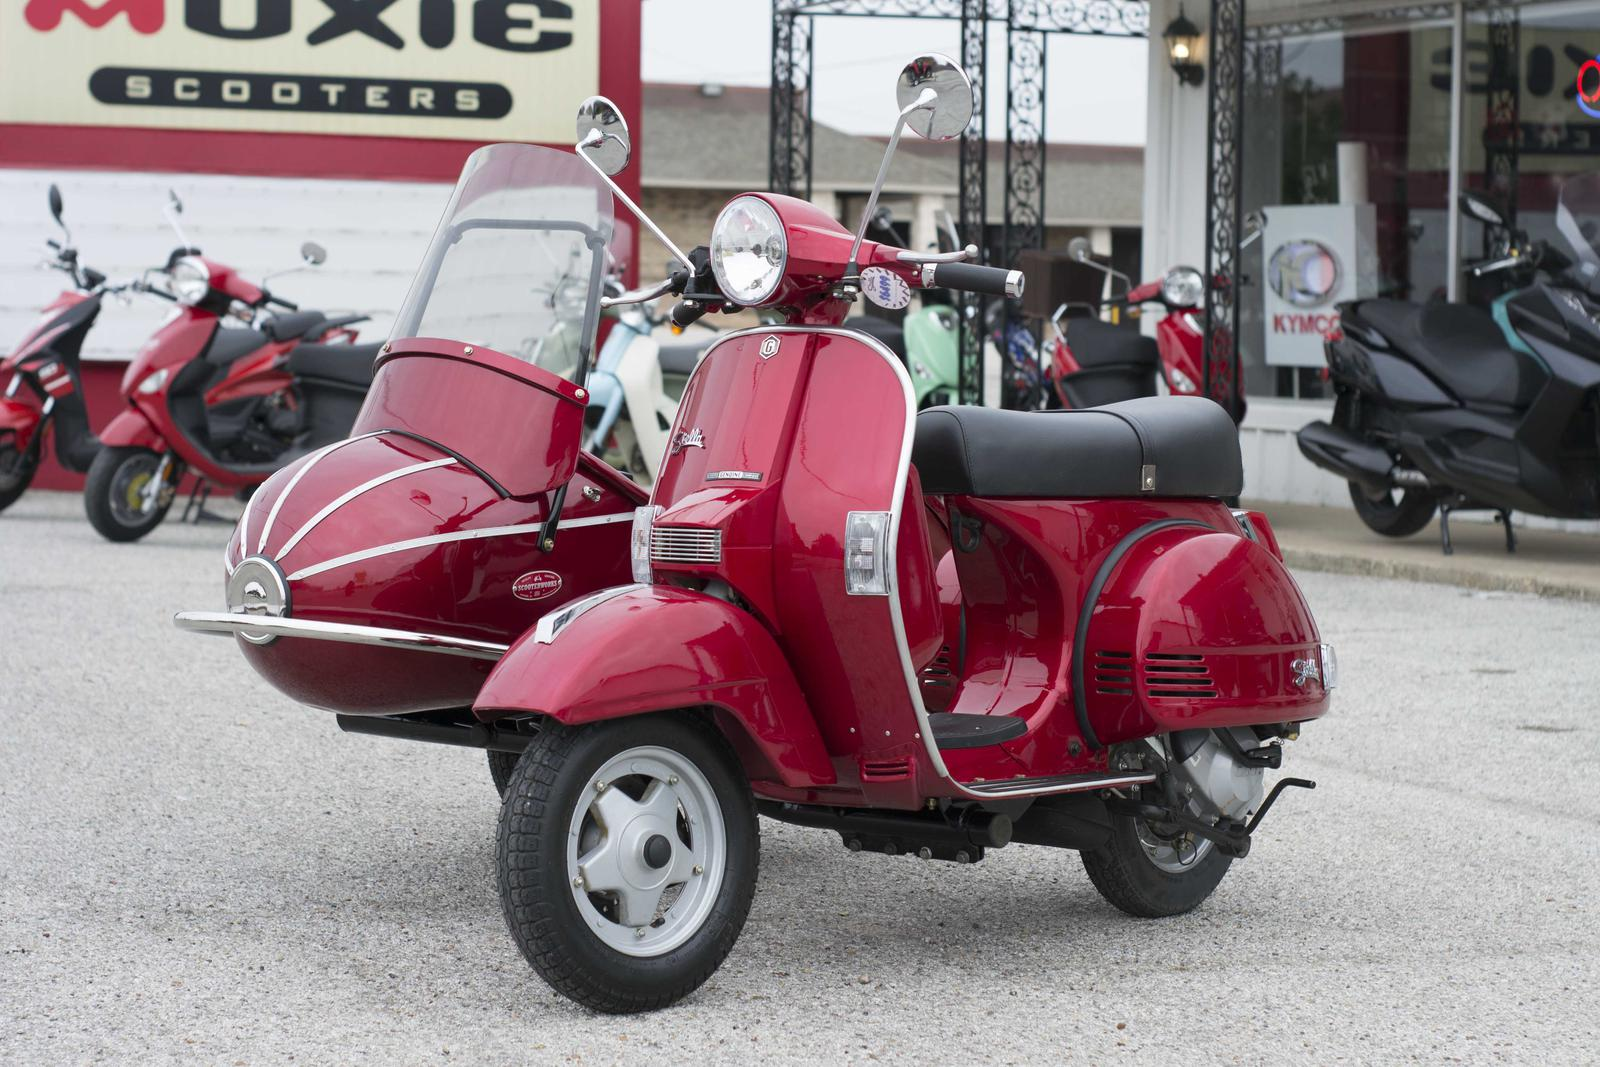 2014 Genuine Scooters Stella Auto Metallic Red With Sidecar For